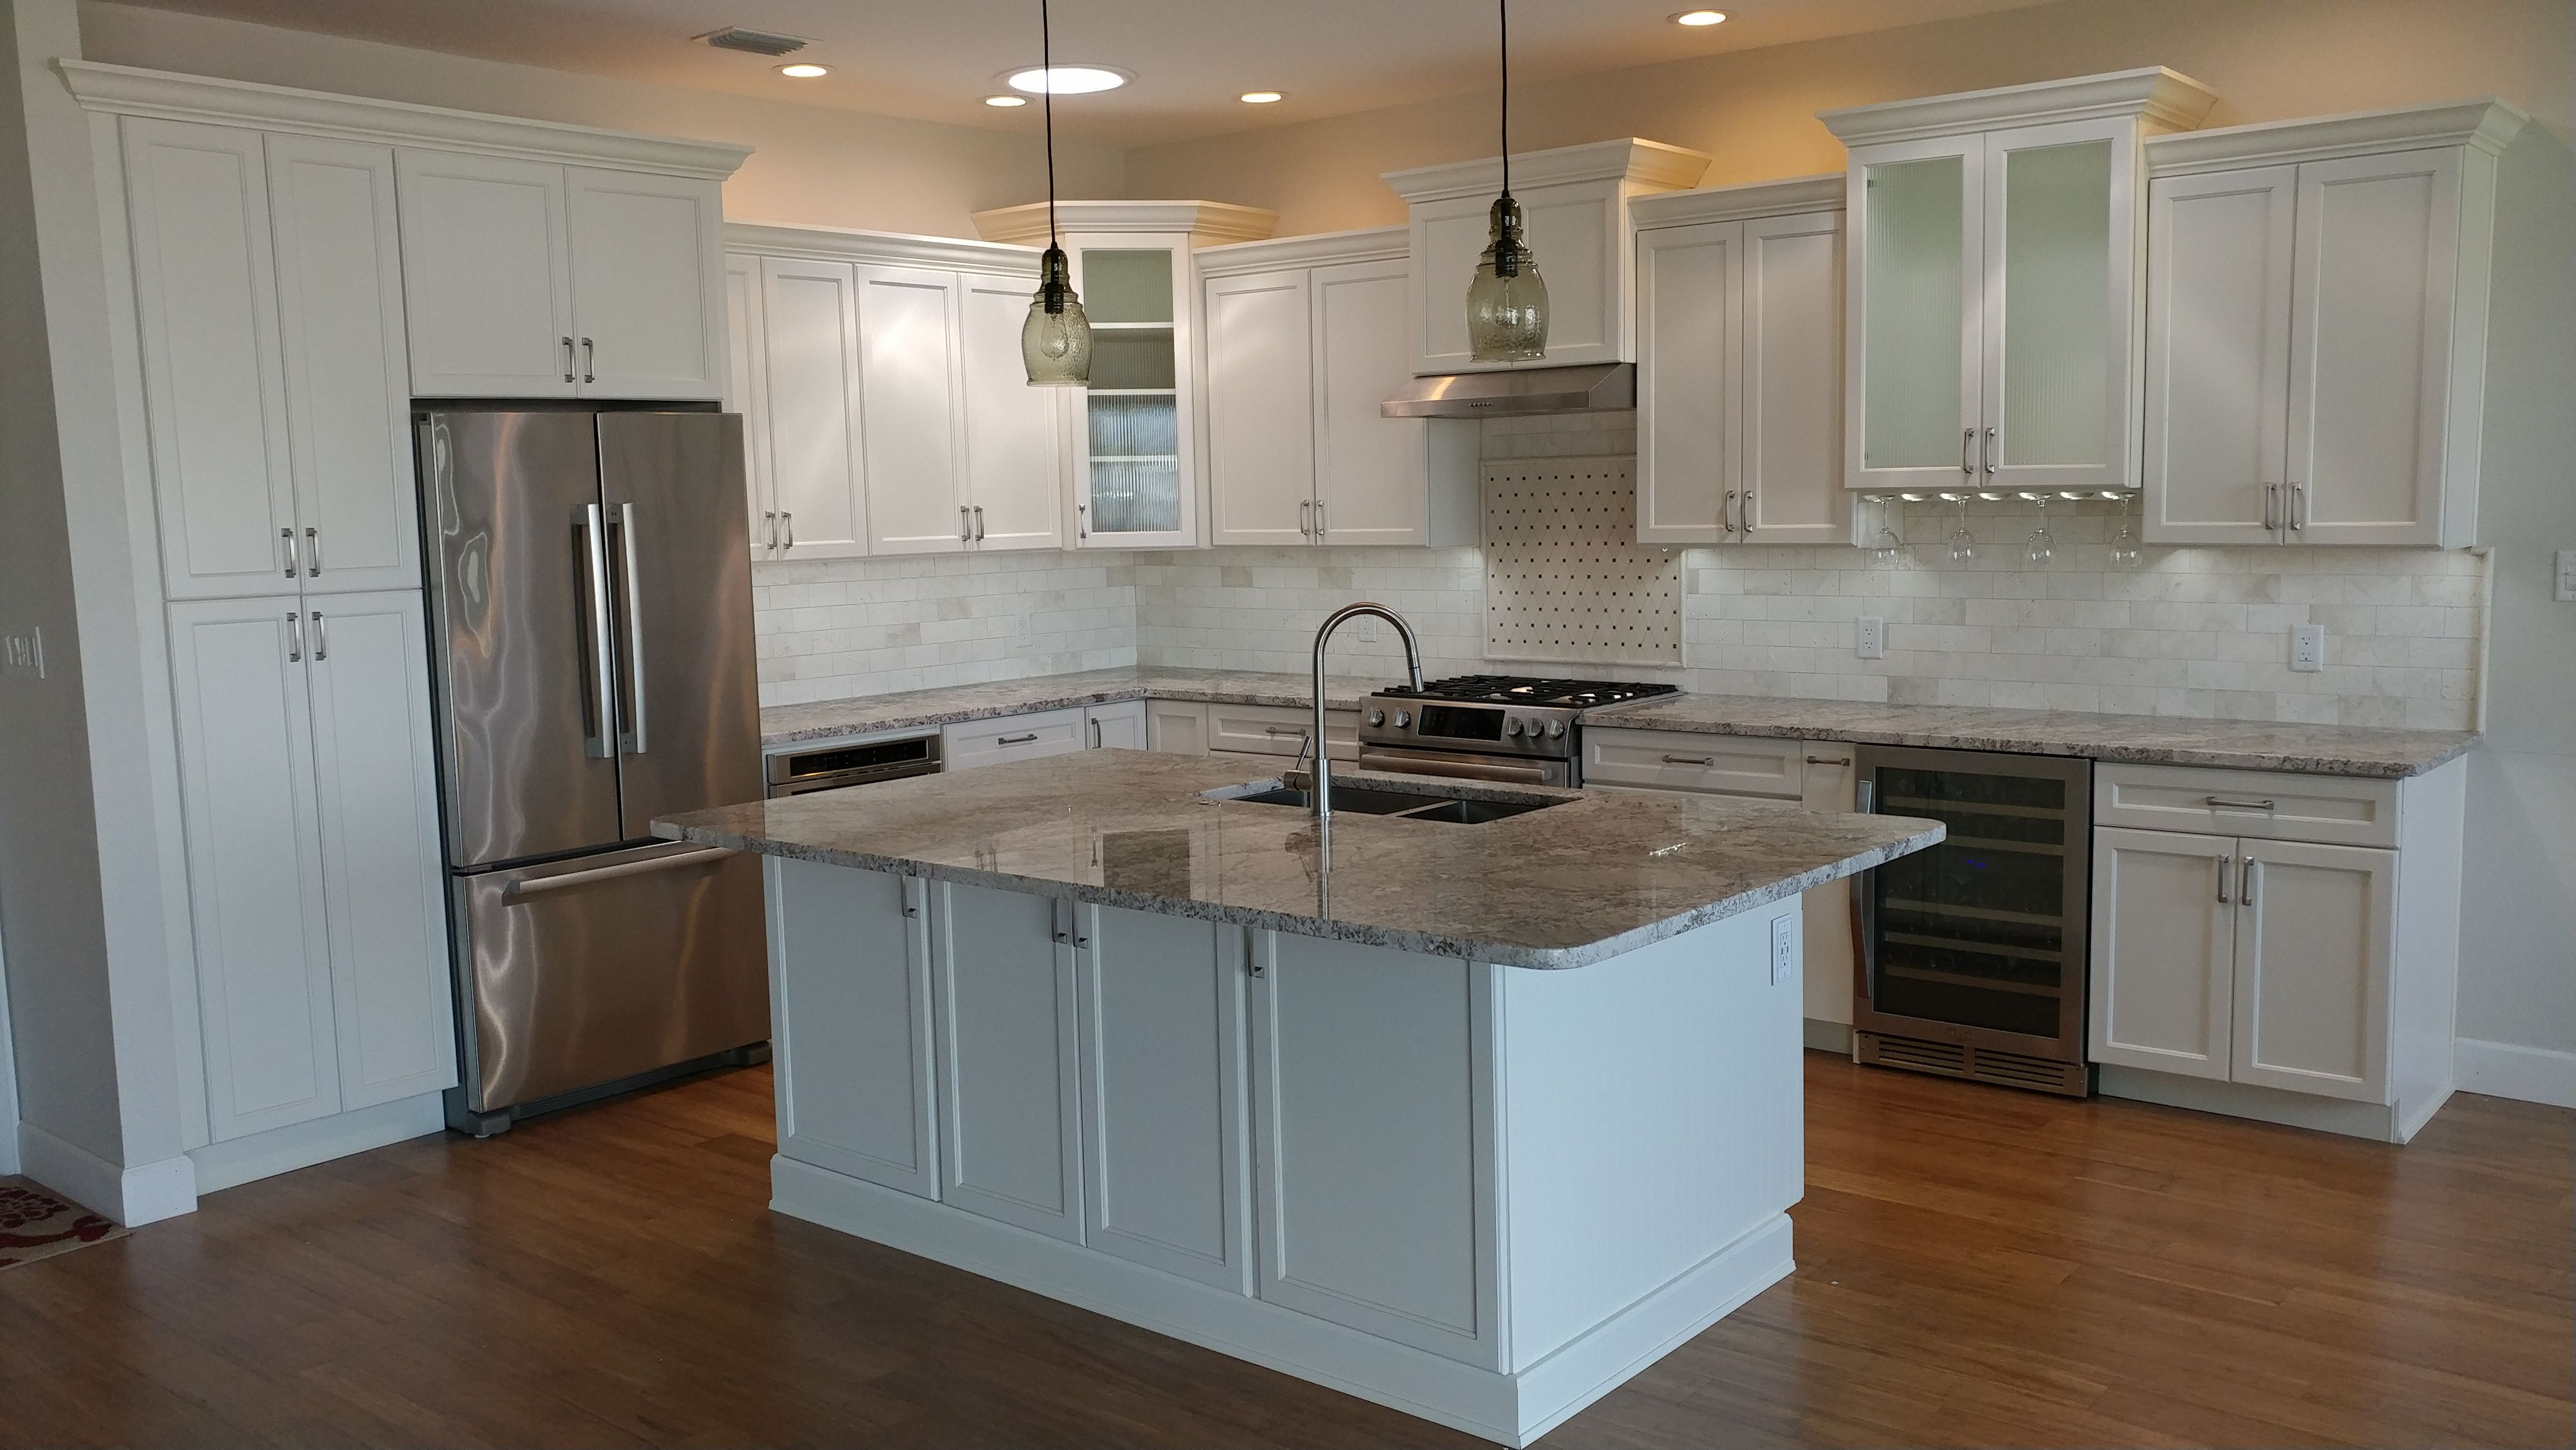 Classic Elegance Meets Technology Alabaster Recessed Cabinets By Eudora Granite Counter Tops And Marble Backsp Recessed Cabinet Steel Fixtures Modern Kitchen